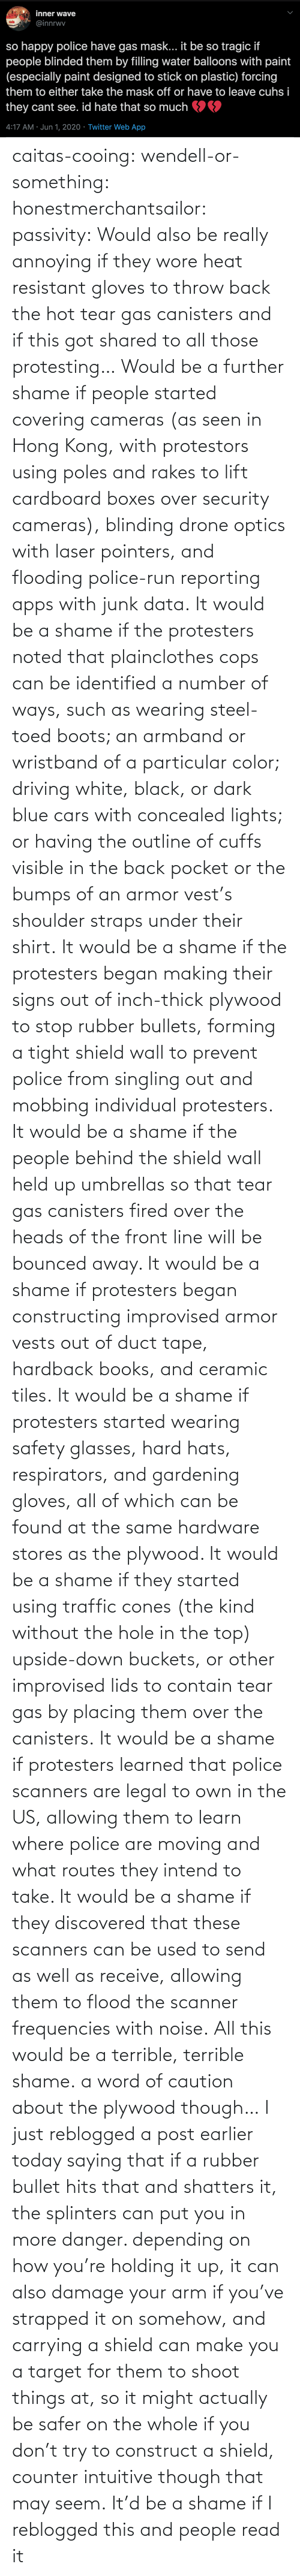 laser: caitas-cooing:  wendell-or-something: honestmerchantsailor:  passivity: Would also be really annoying if they wore heat resistant gloves to throw back the hot tear gas canisters and if this got shared to all those protesting… Would be a further shame if people started covering cameras (as seen in Hong Kong, with protestors using poles and rakes to lift cardboard boxes over security cameras), blinding drone optics with laser pointers, and flooding police-run reporting apps with junk data. It would be a shame if the protesters noted that plainclothes cops can be identified a number of ways, such as wearing steel-toed boots; an armband or wristband of a particular color; driving white, black, or dark blue cars with concealed lights; or having the outline of cuffs visible in the back pocket or the bumps of an armor vest's shoulder straps under their shirt. It would be a shame if the protesters began making their signs out of inch-thick plywood to stop rubber bullets, forming a tight shield wall to prevent police from singling out and mobbing individual protesters. It would be a shame if the people behind the shield wall held up umbrellas so that tear gas canisters fired over the heads of the front line will be bounced away. It would be a shame if protesters began constructing improvised armor vests out of duct tape, hardback books, and ceramic tiles. It would be a shame if protesters started wearing safety glasses, hard hats, respirators, and gardening gloves, all of which can be found at the same hardware stores as the plywood. It would be a shame if they started using traffic cones (the kind without the hole in the top) upside-down buckets, or other improvised lids to contain tear gas by placing them over the canisters. It would be a shame if protesters learned that police scanners are legal to own in the US, allowing them to learn where police are moving and what routes they intend to take. It would be a shame if they discovered that these scanners can be used to send as well as receive, allowing them to flood the scanner frequencies with noise. All this would be a terrible, terrible shame.    a word of caution about the plywood though… I just reblogged a post earlier today saying that if a rubber bullet hits that and shatters it, the splinters can put you in more danger. depending on how you're holding it up, it can also damage your arm if you've strapped it on somehow, and carrying a shield can make you a target for them to shoot things at, so it might actually be safer on the whole if you don't try to construct a shield, counter intuitive though that may seem.    It'd be a shame if I reblogged this and people read it